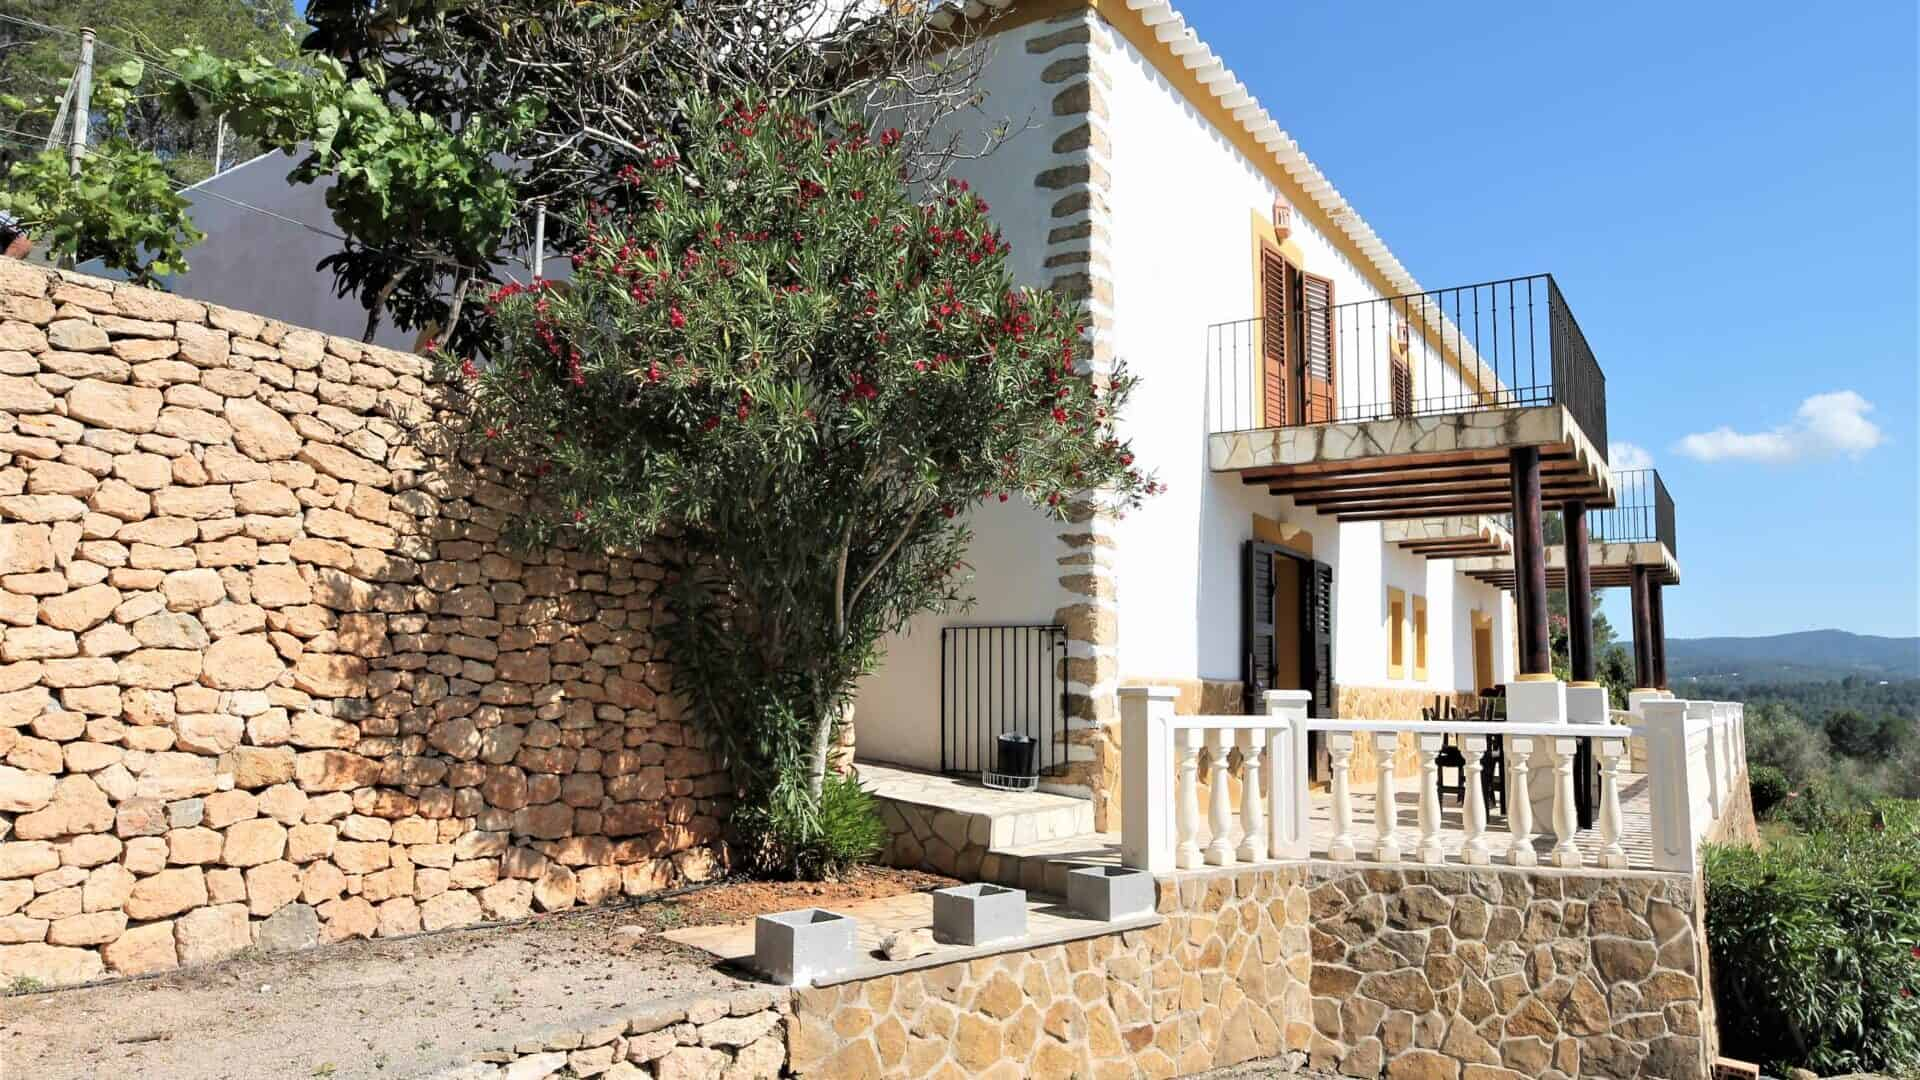 Authentic 6 bedrooms finca seasonal rental in the countryside